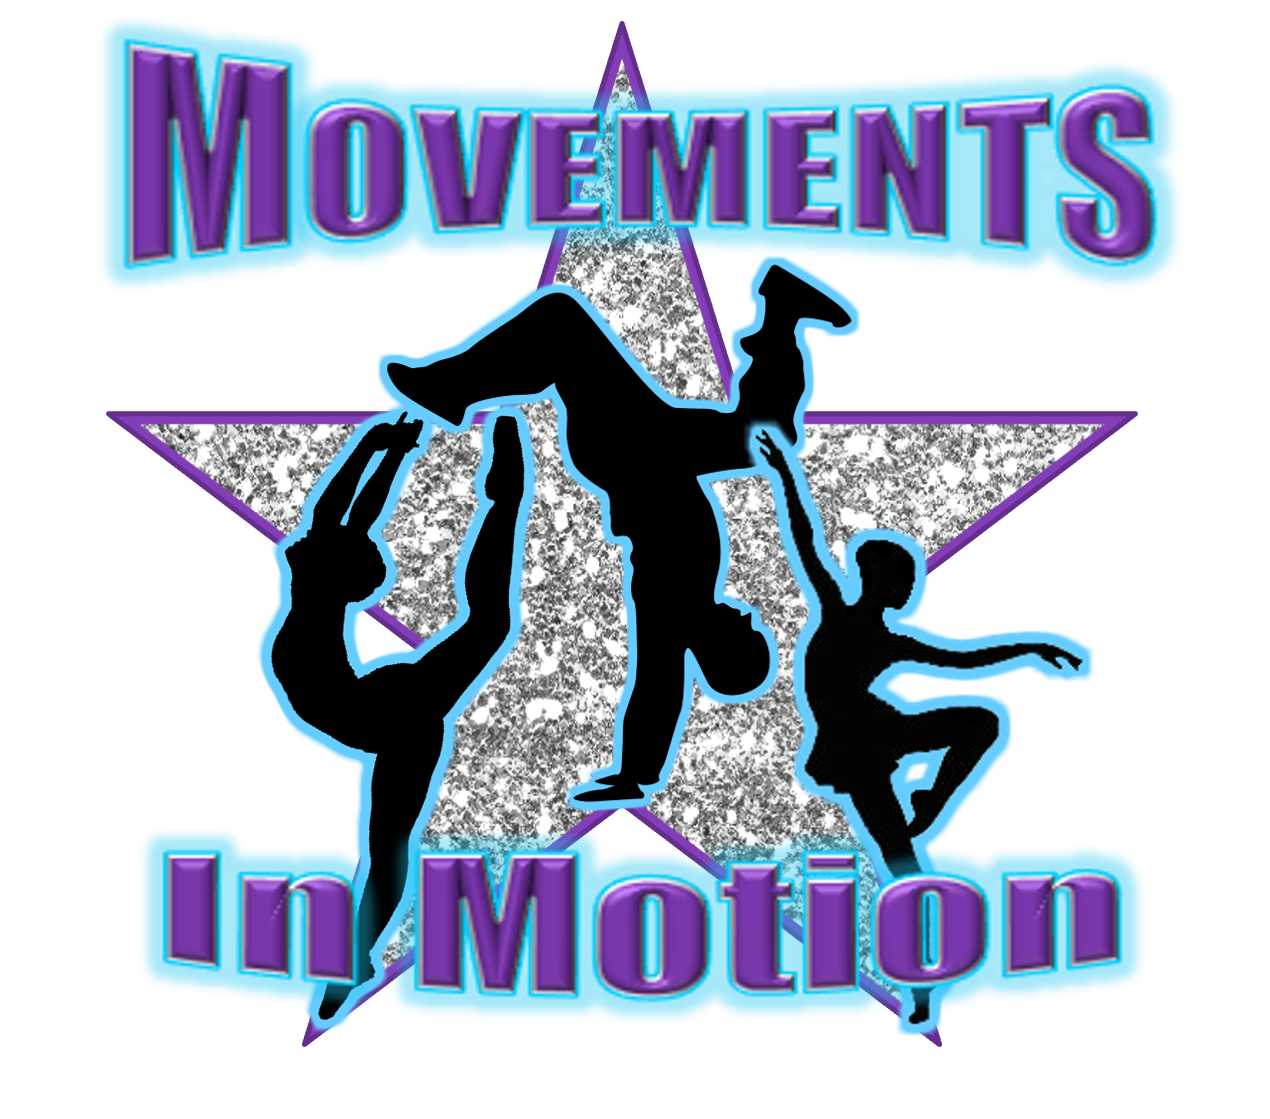 Movements In Motion